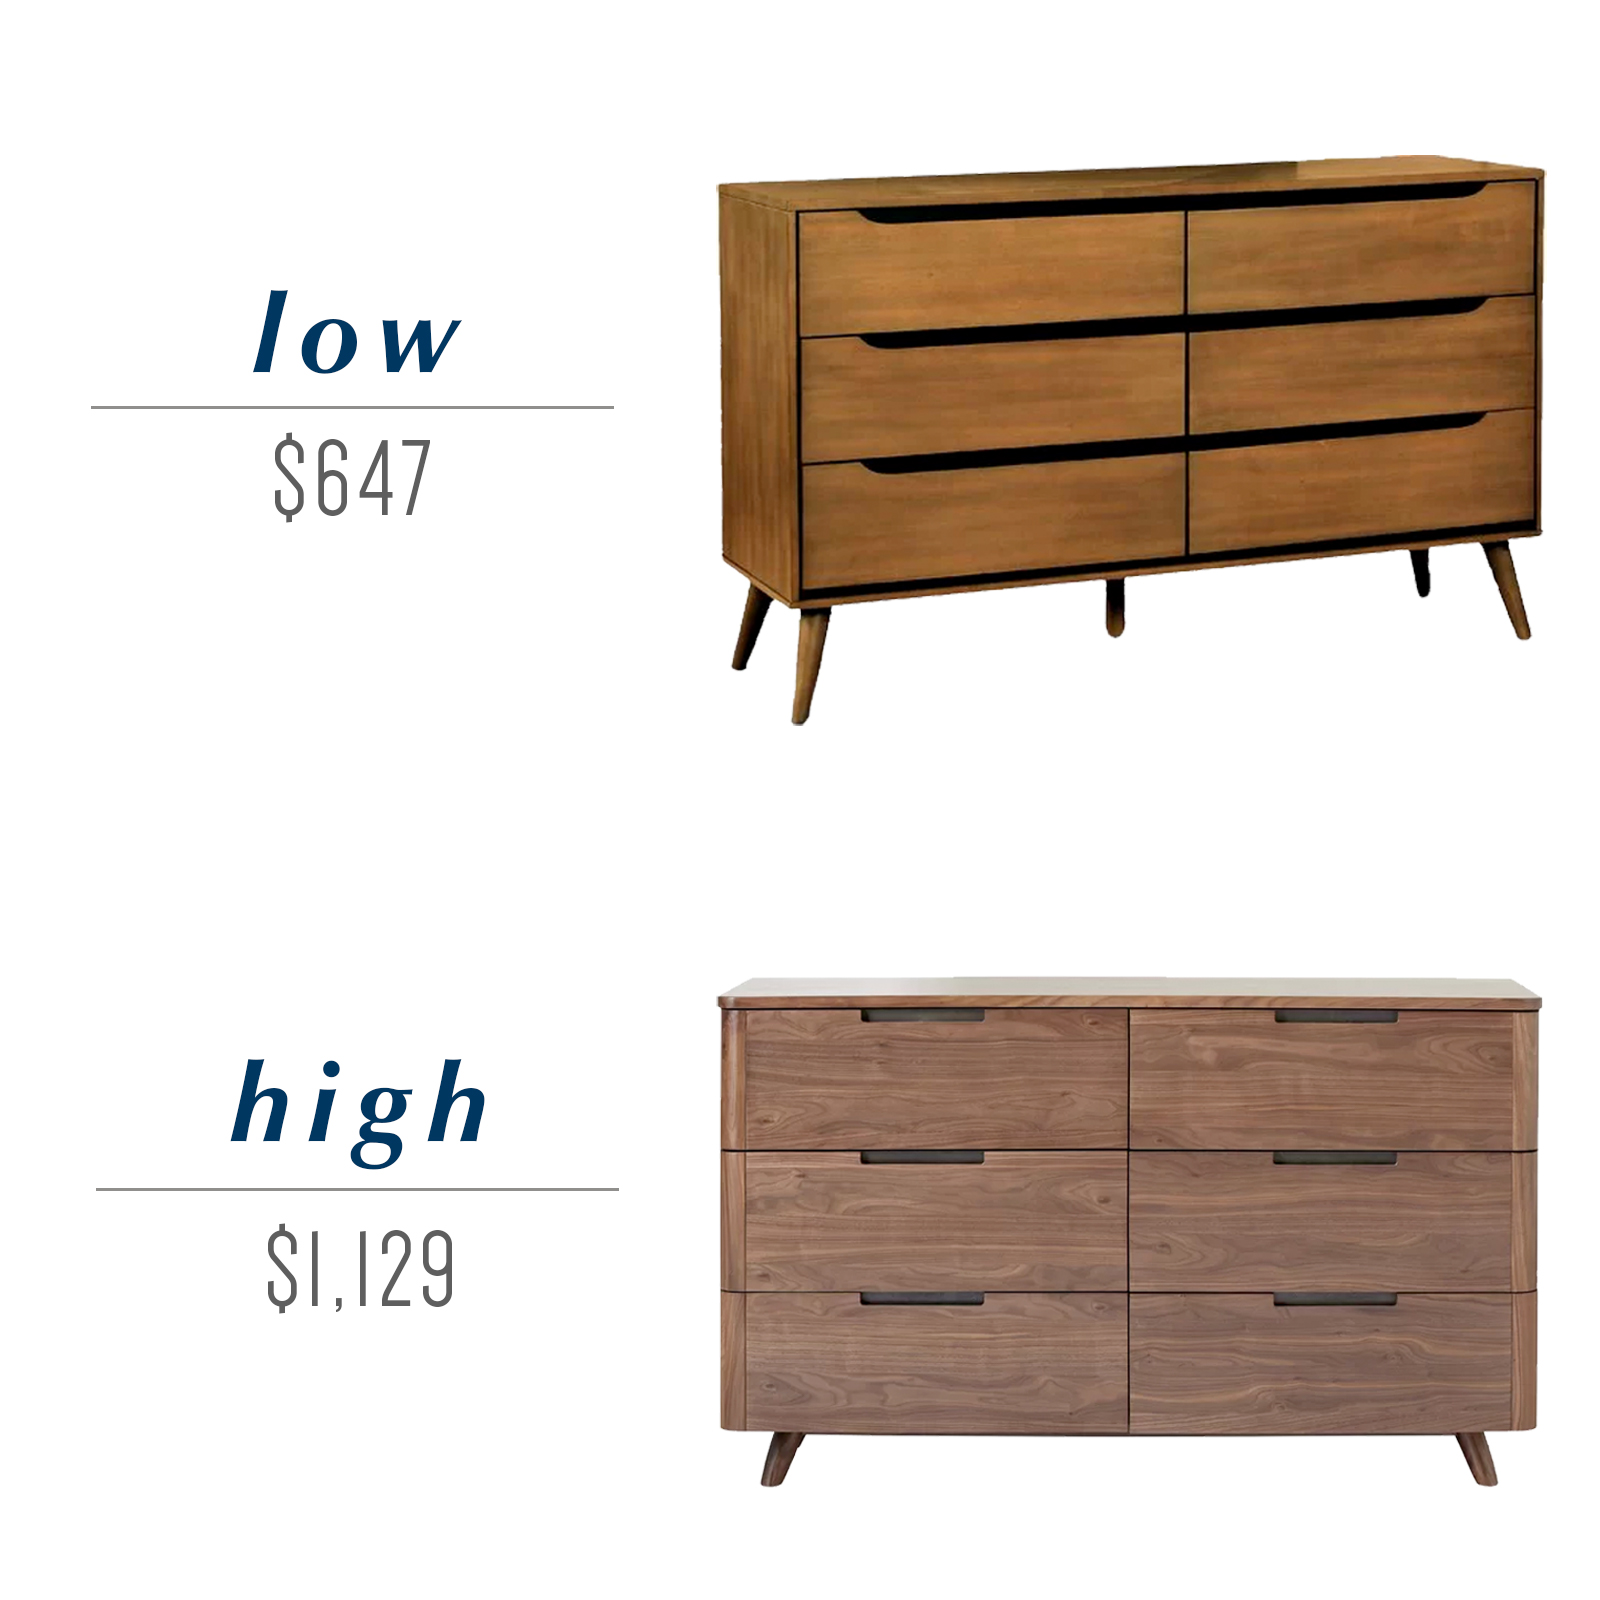 Get the look for less or decide to splurge! Come see the budget-friendly and spend-worthy pieces of furniture in this blog post including the high/low sources for these walnut mid-century modern dressers!